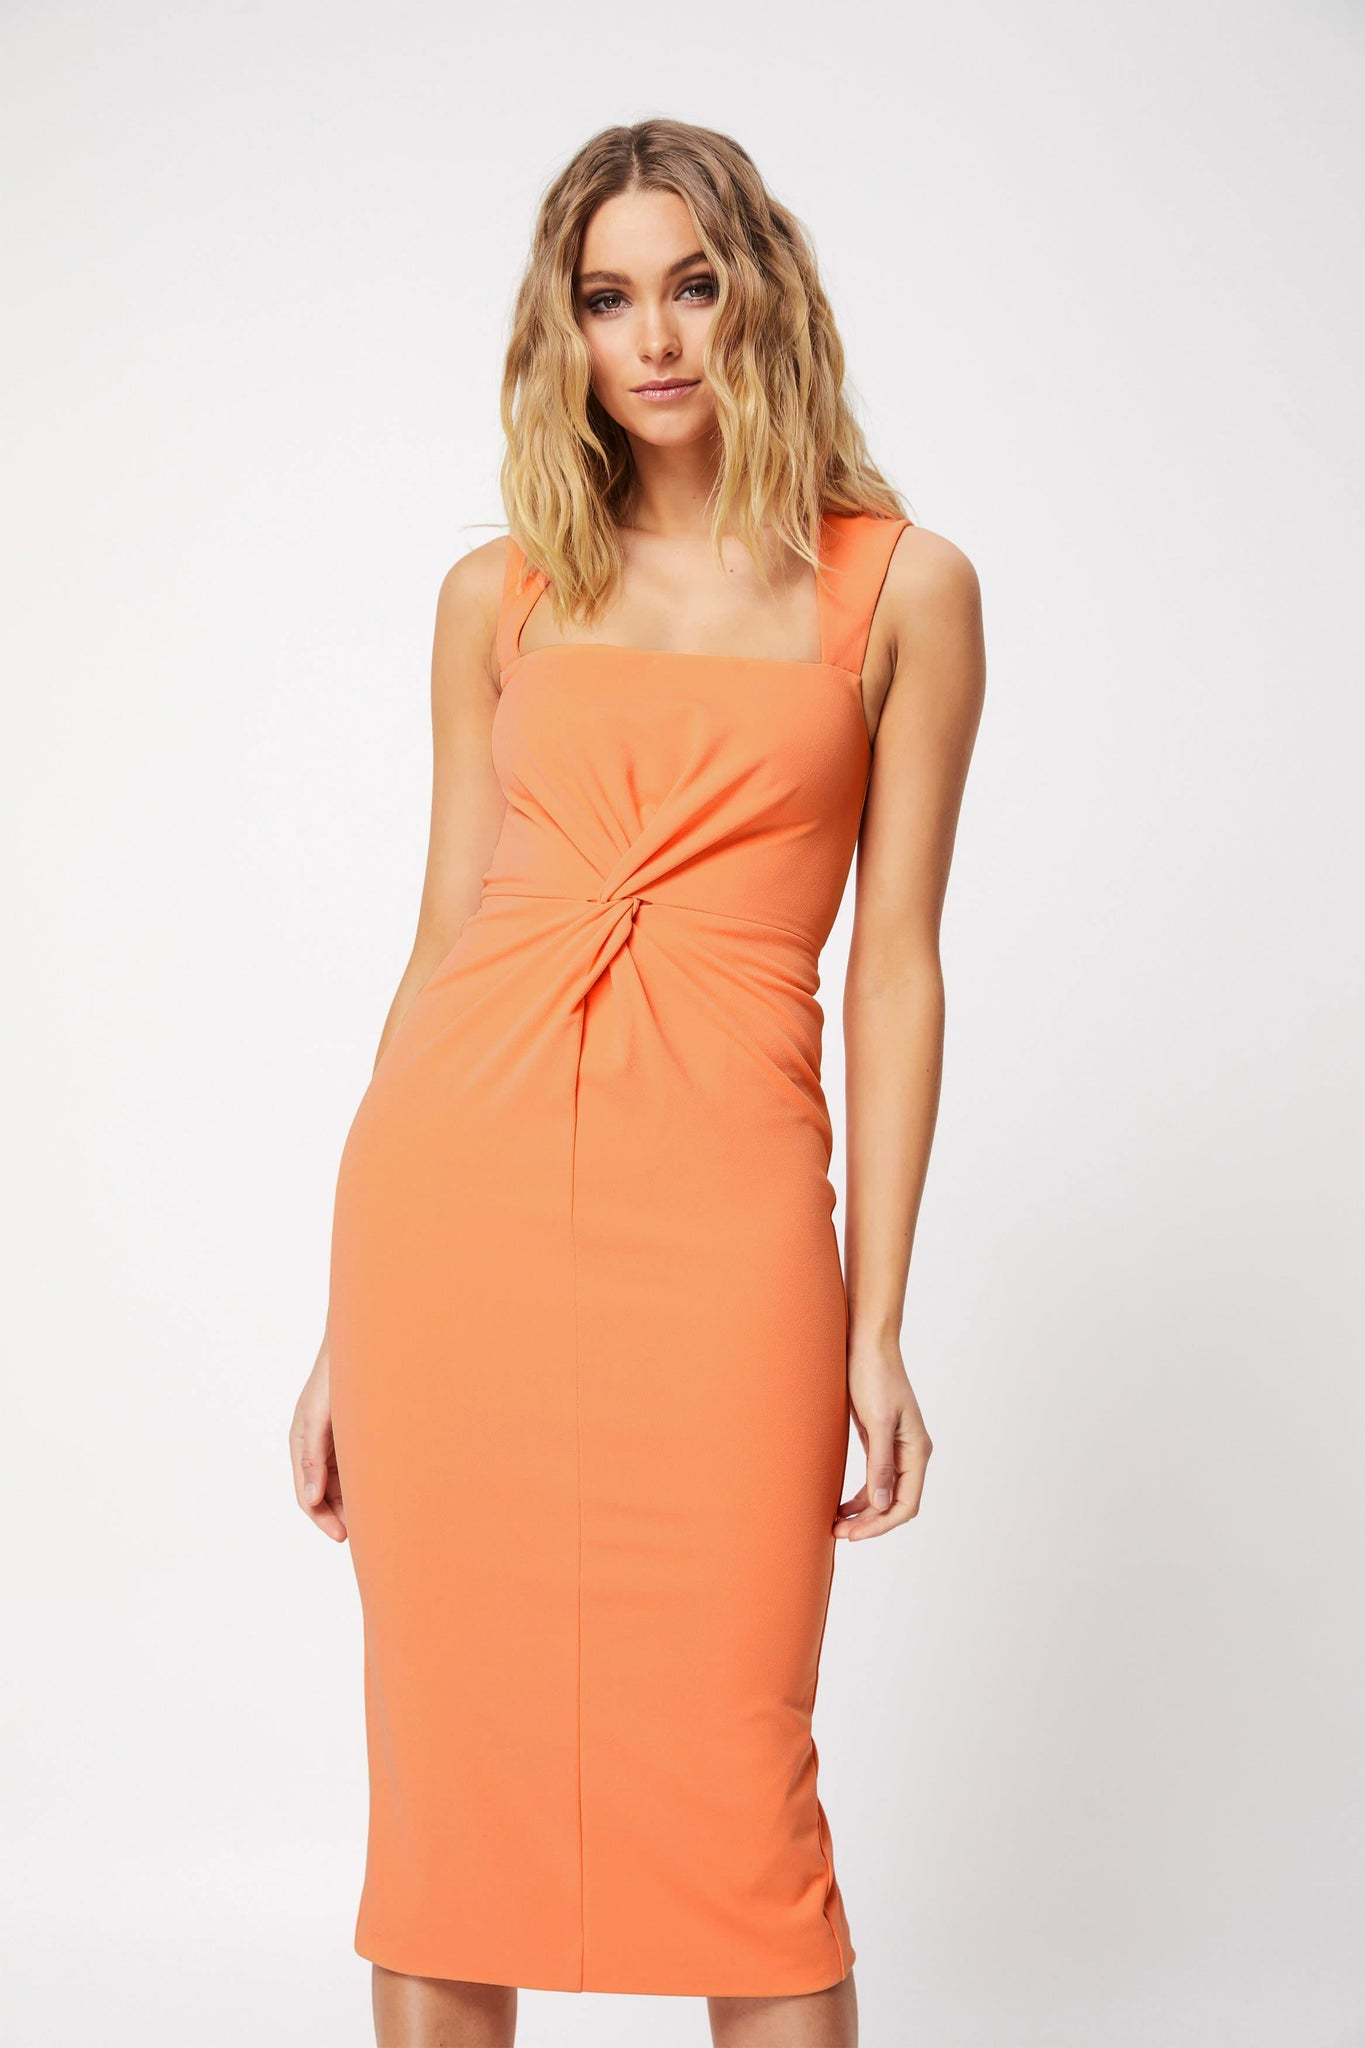 The Envision Dress